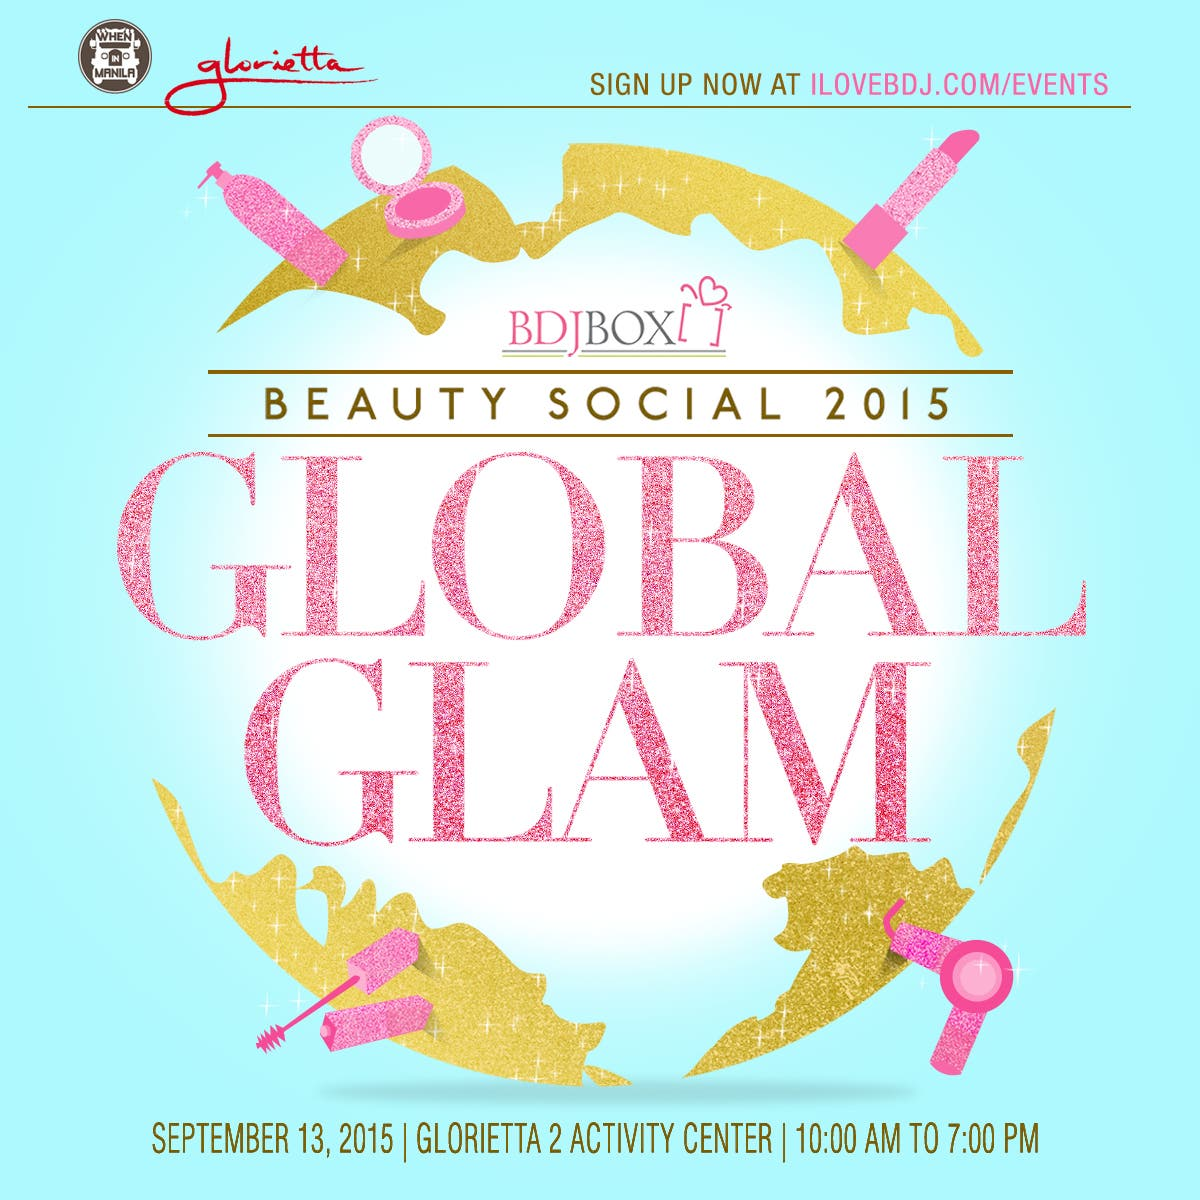 BDJBOX_BEAUTY SOCIAL 2015_WHENINMANILA